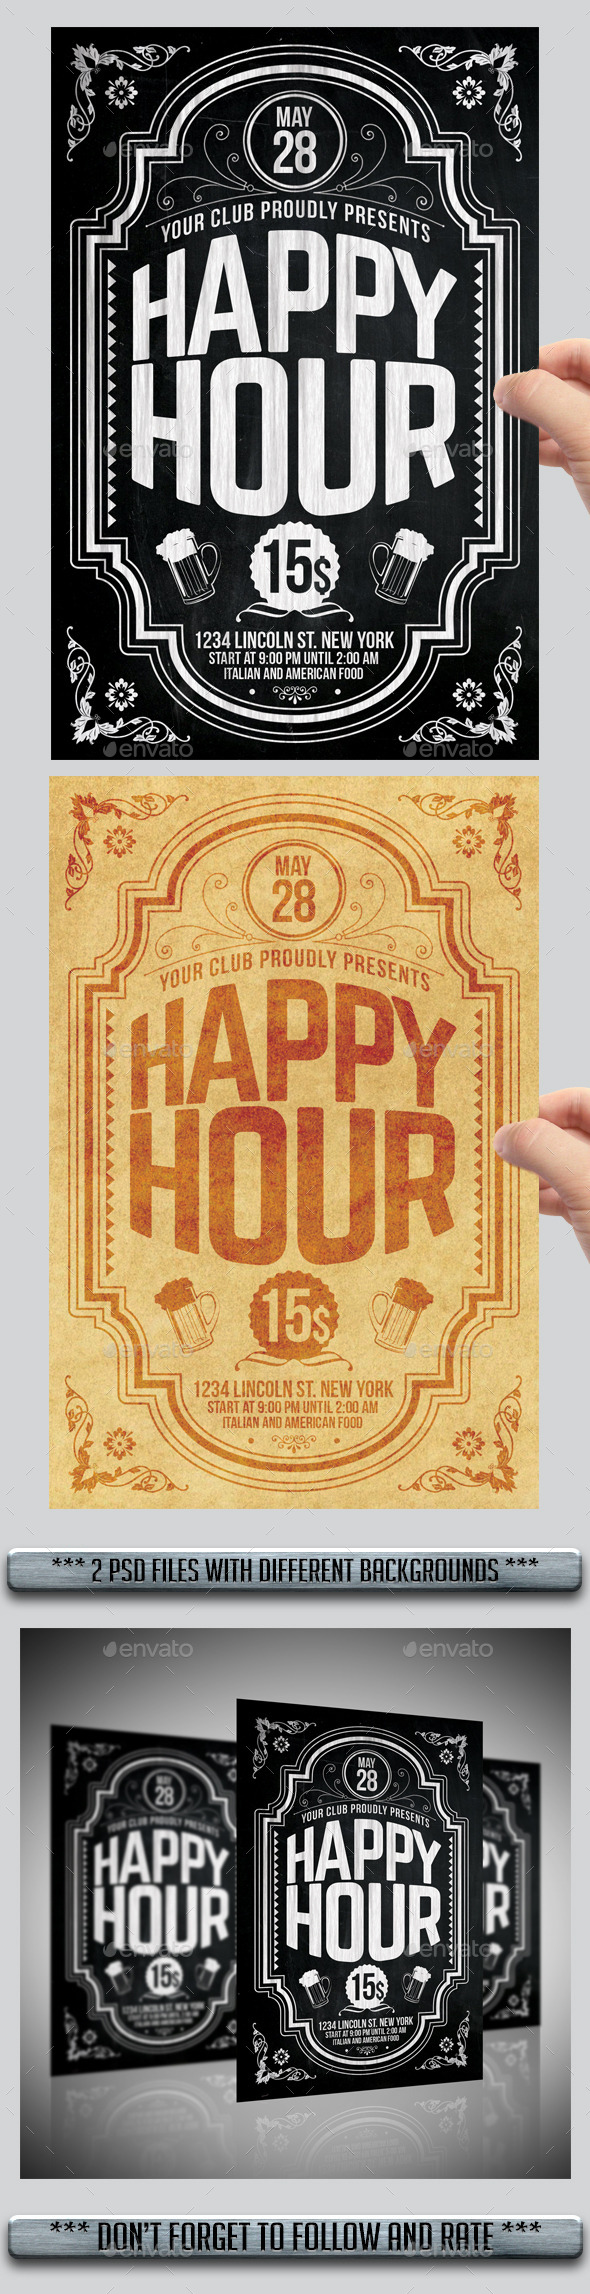 GraphicRiver Happy Hour Flyer 11416758